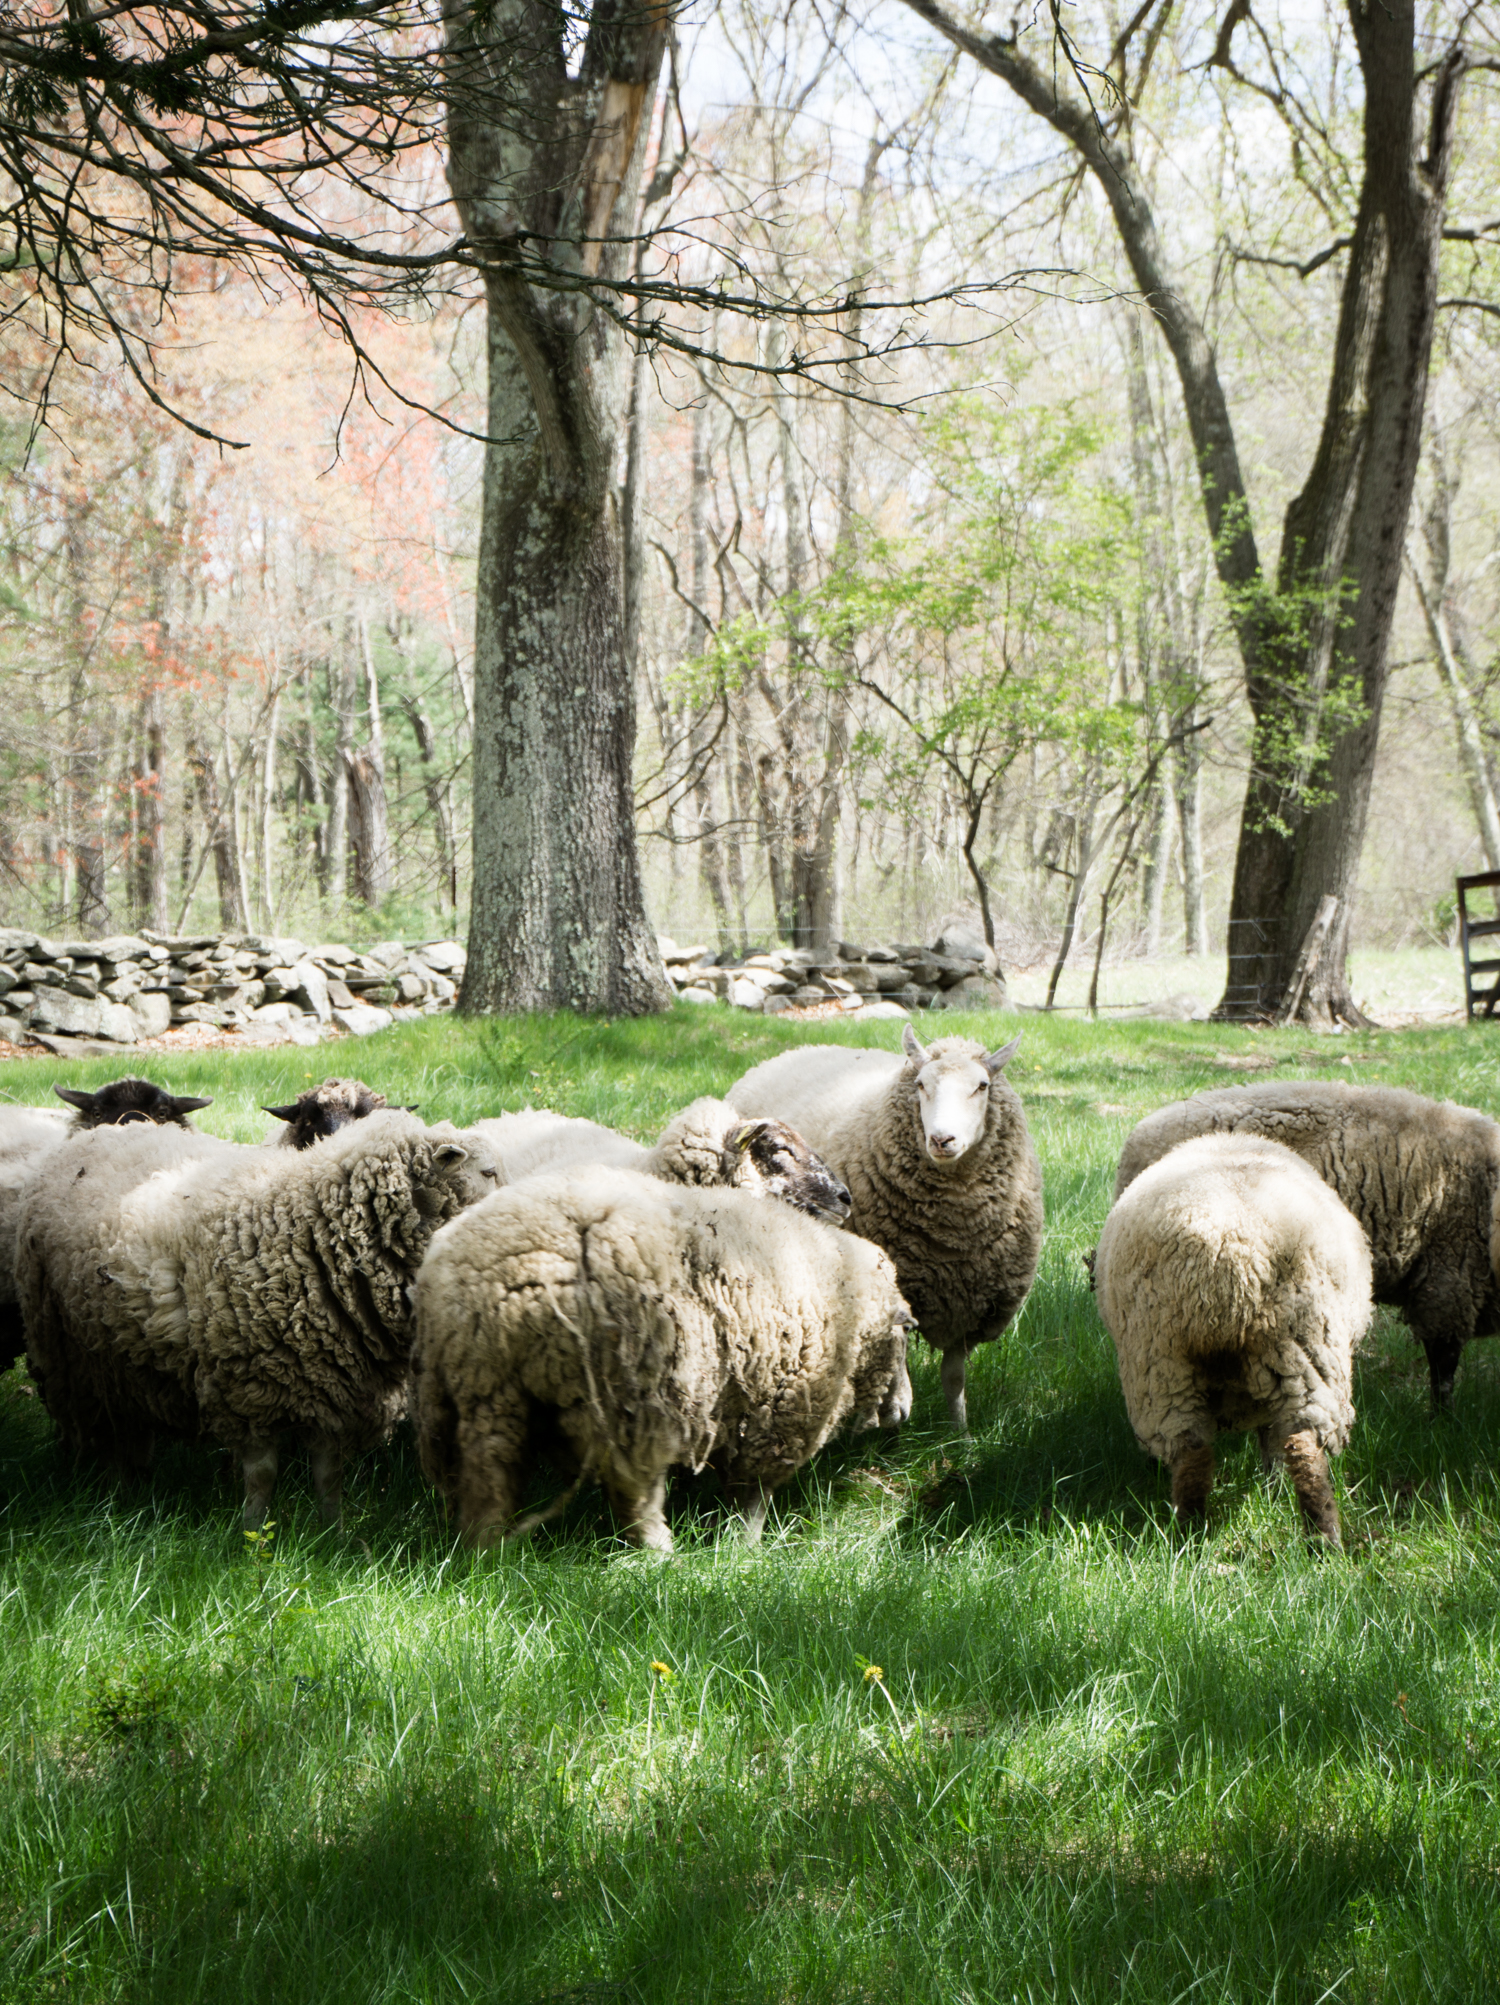 Sheep flock at Tree House Farms in Millis, MA.